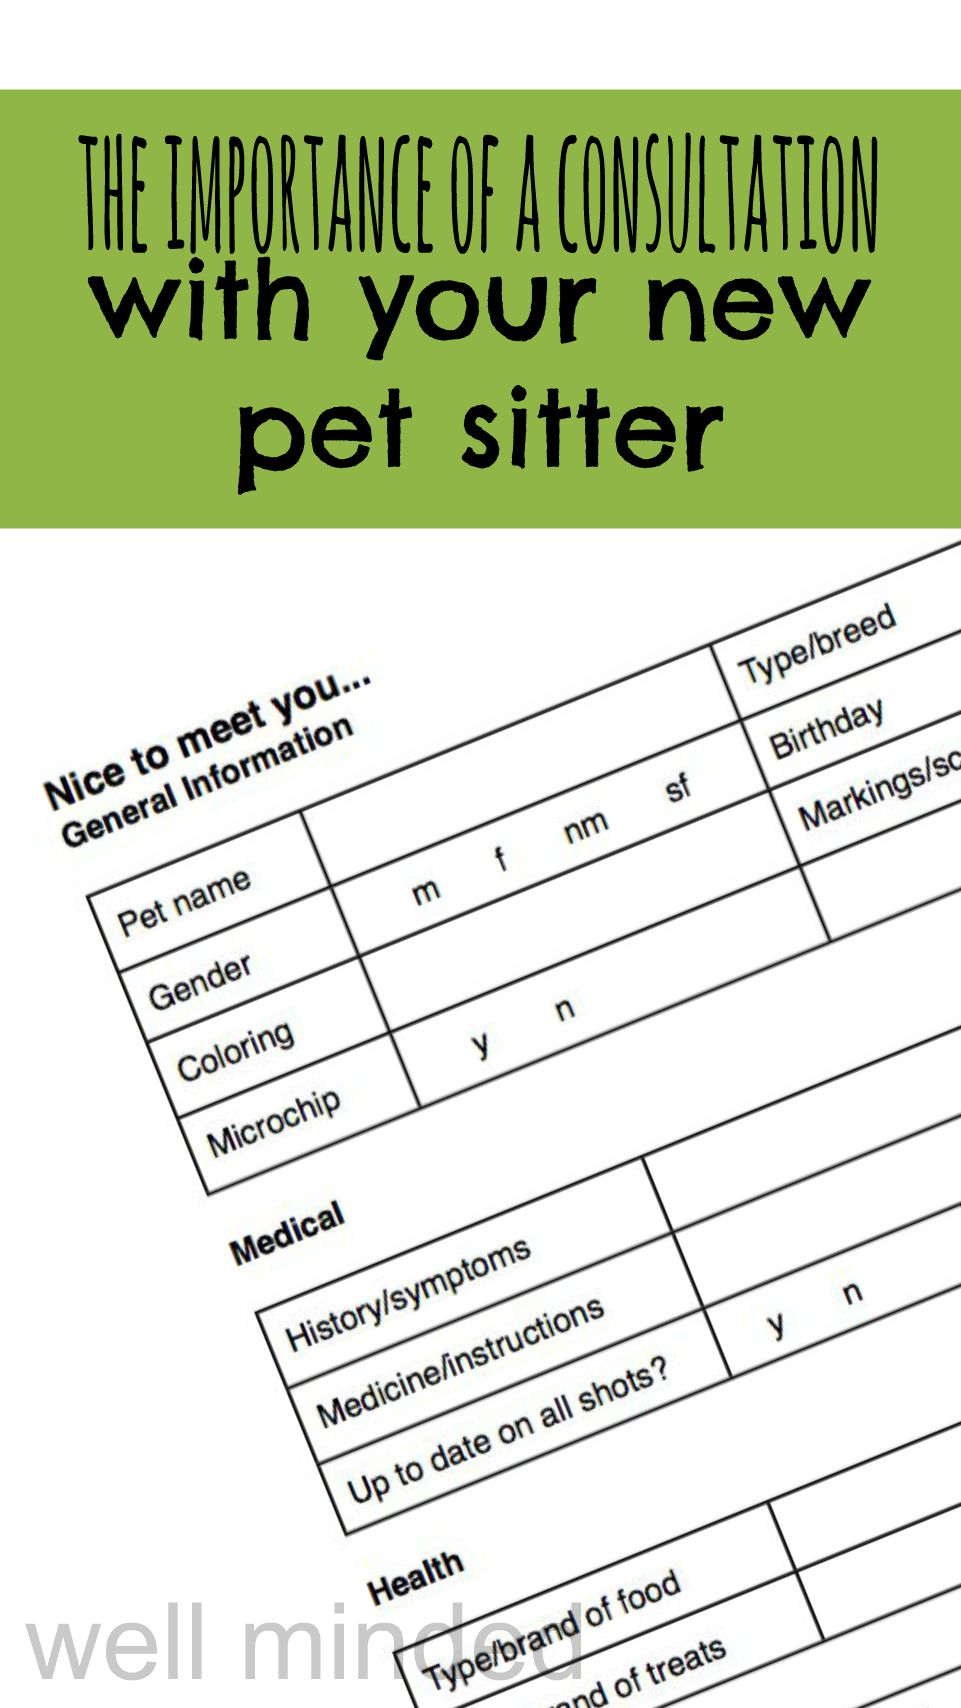 The importance of a consultation with your new pet sitter.